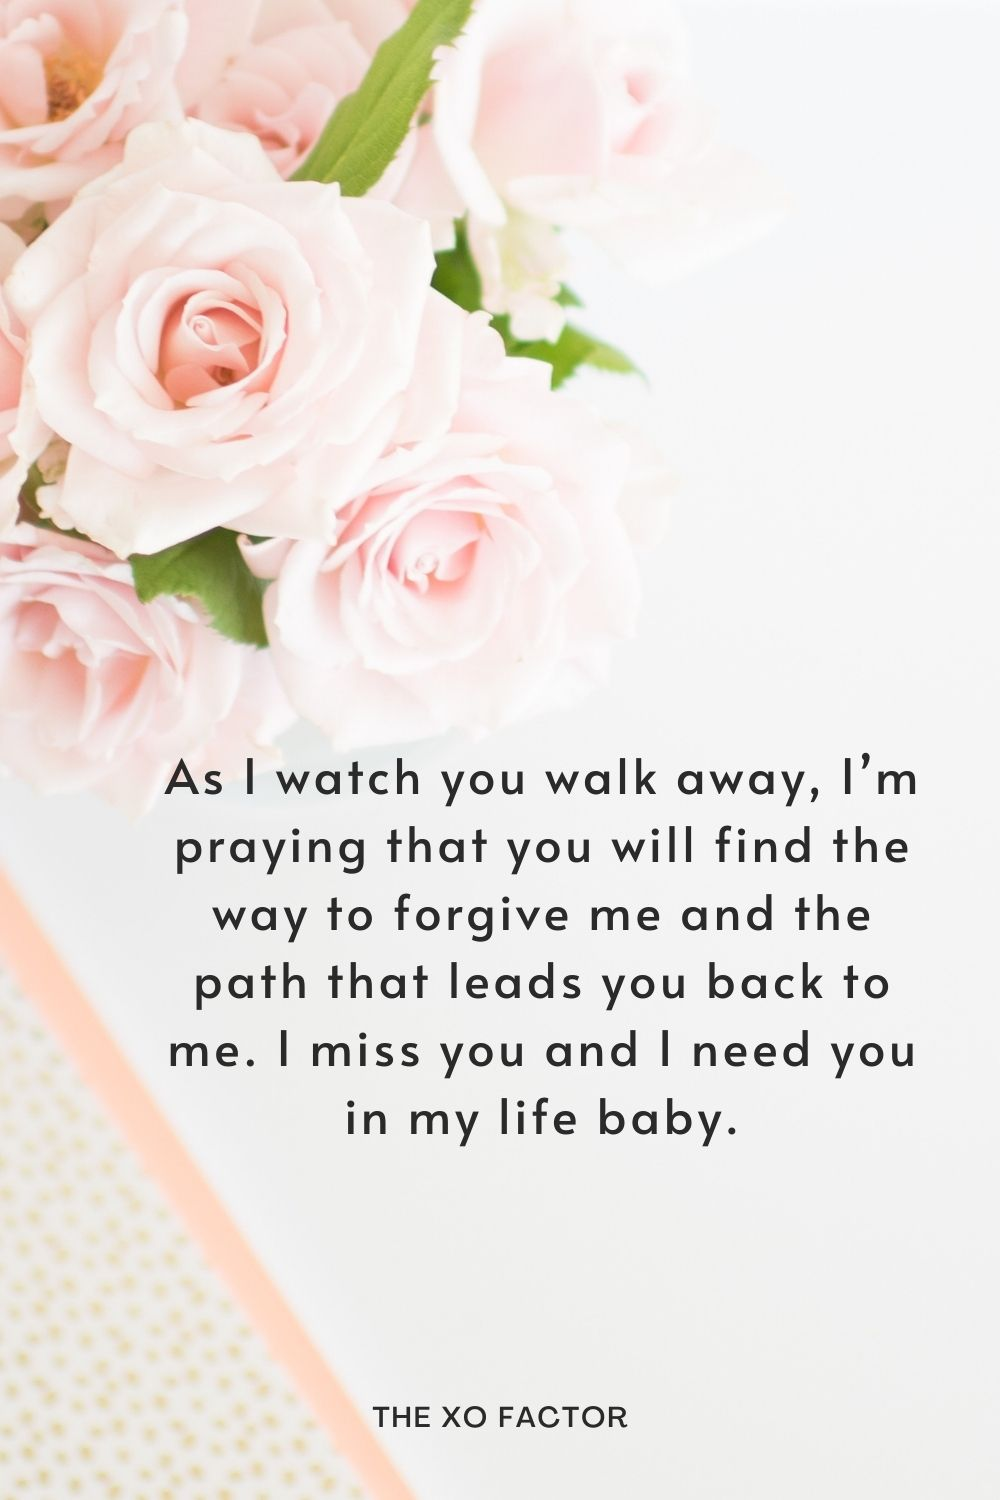 As I watch you walk away, I'm praying that you will find the way to forgive me and the path that leads you back to me. I miss you and I need you in my life baby.